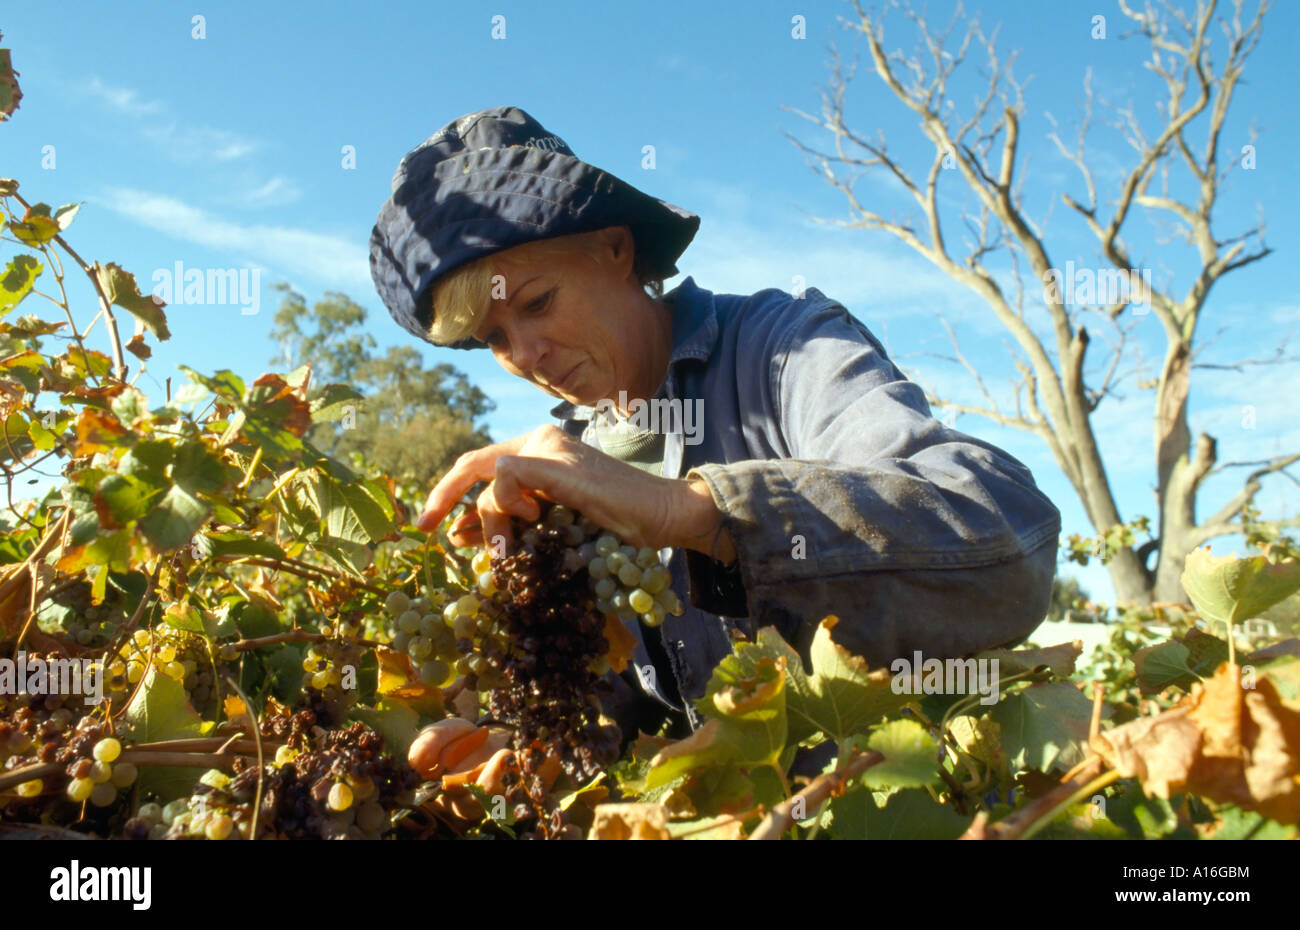 female worker harvesting grapes Anderson Valley CA USA - Stock Image